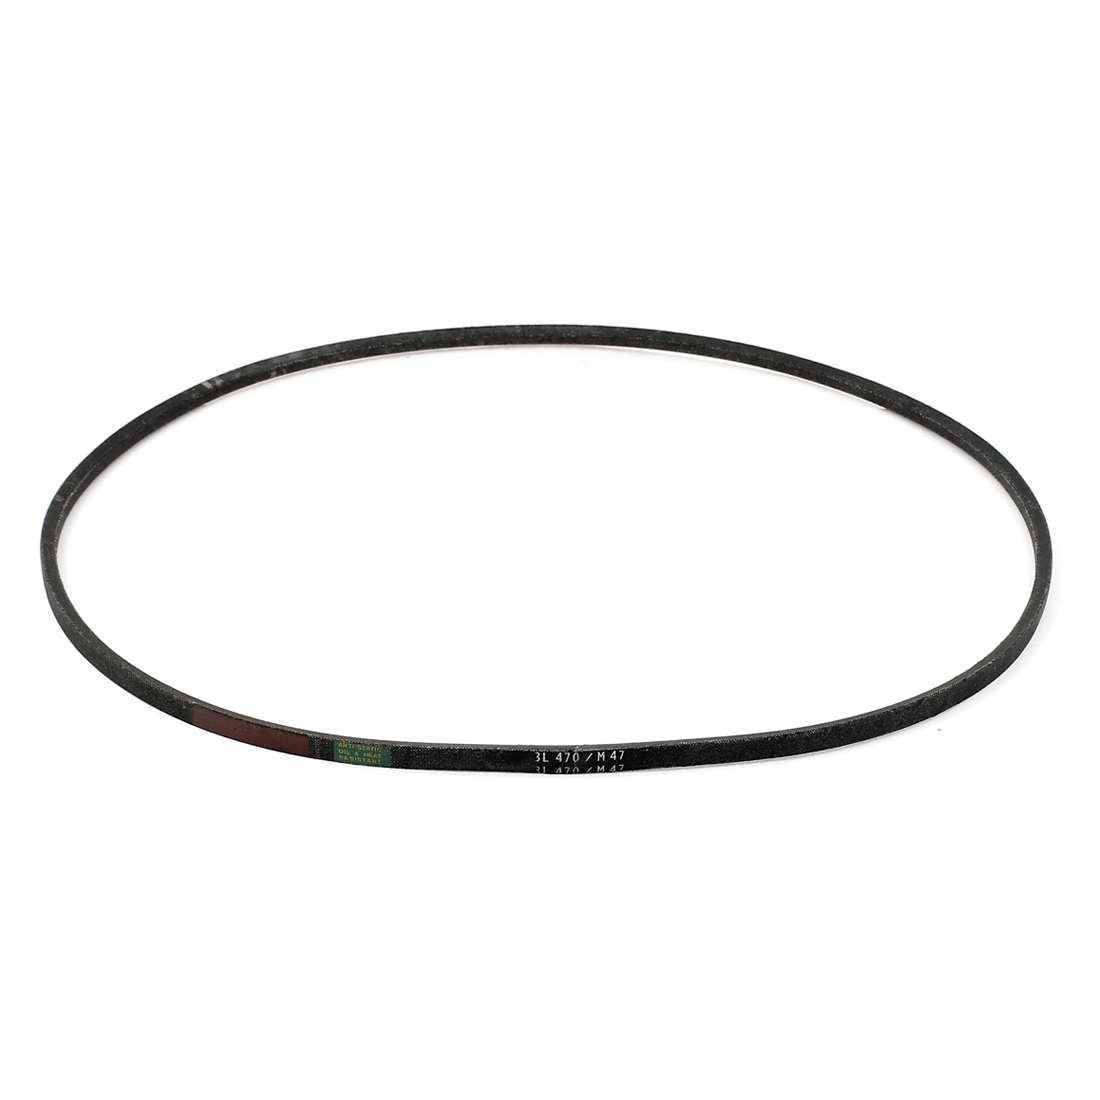 "Lawn Mower Replacement Transmission V Belt M Type M47 47"" Length"